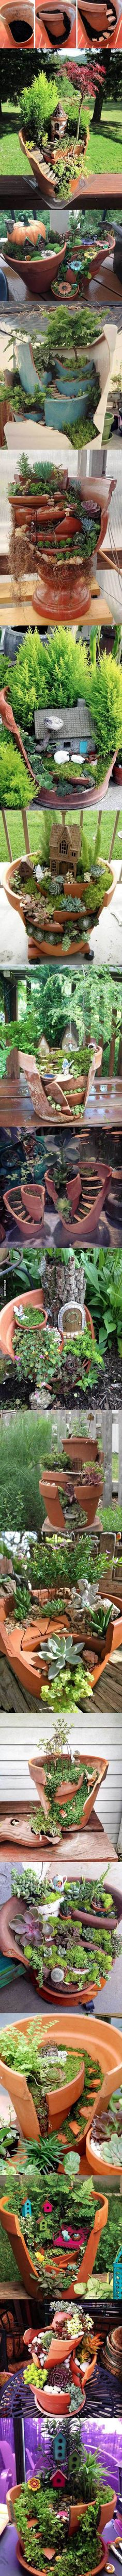 DIY Fairy Gardens from Broken Pots Don't Trash Broken Pottery, Instead Do This With It